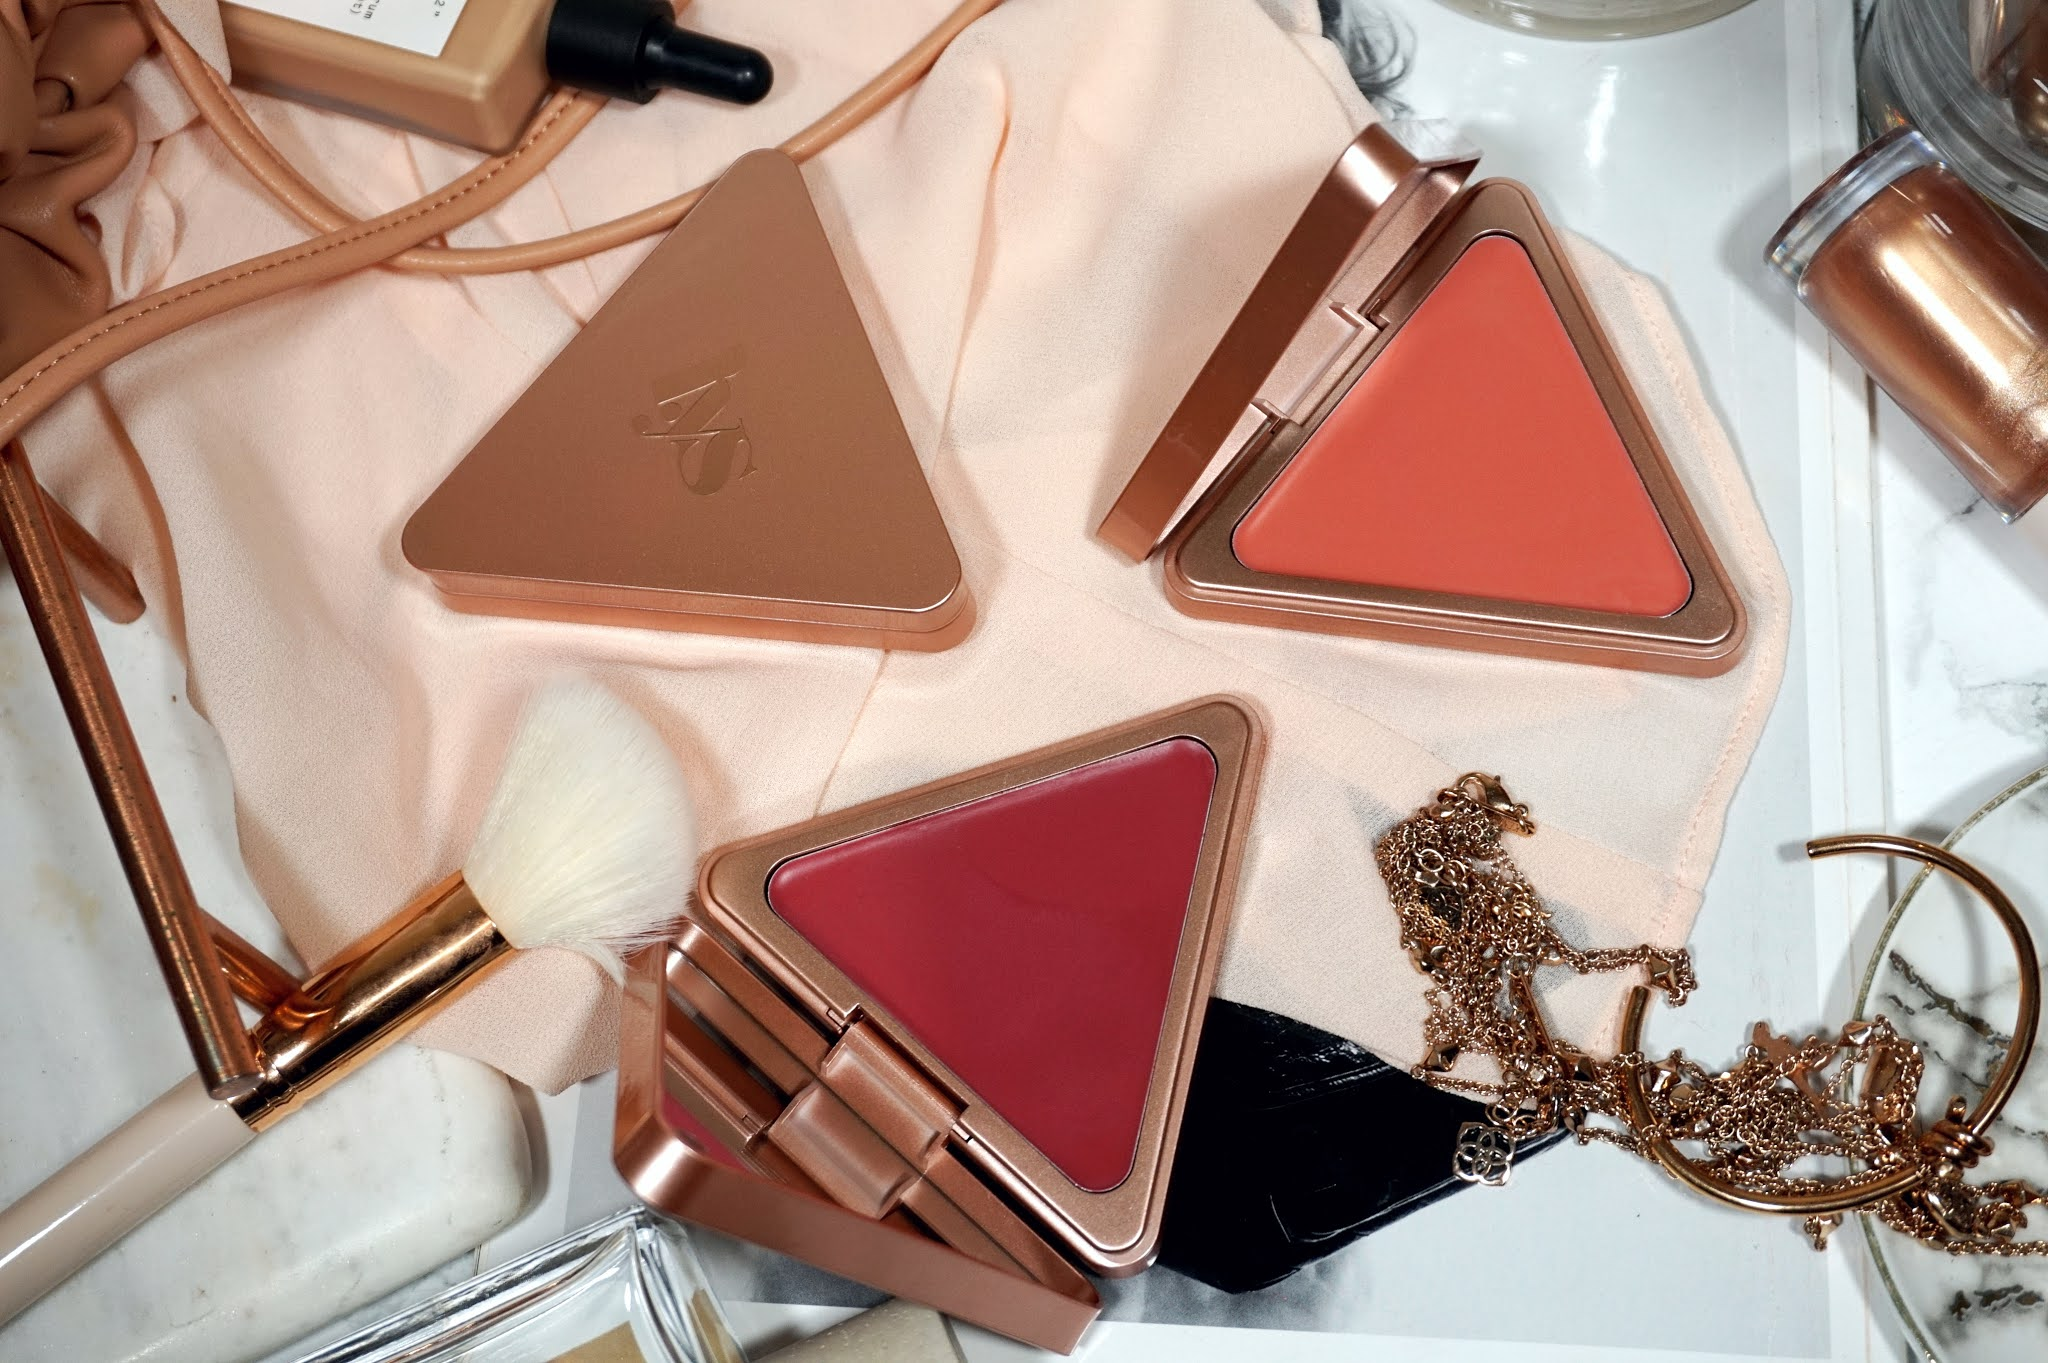 LYS Beauty Higher Standard Satin Matte Cream Blush Review and Swatches